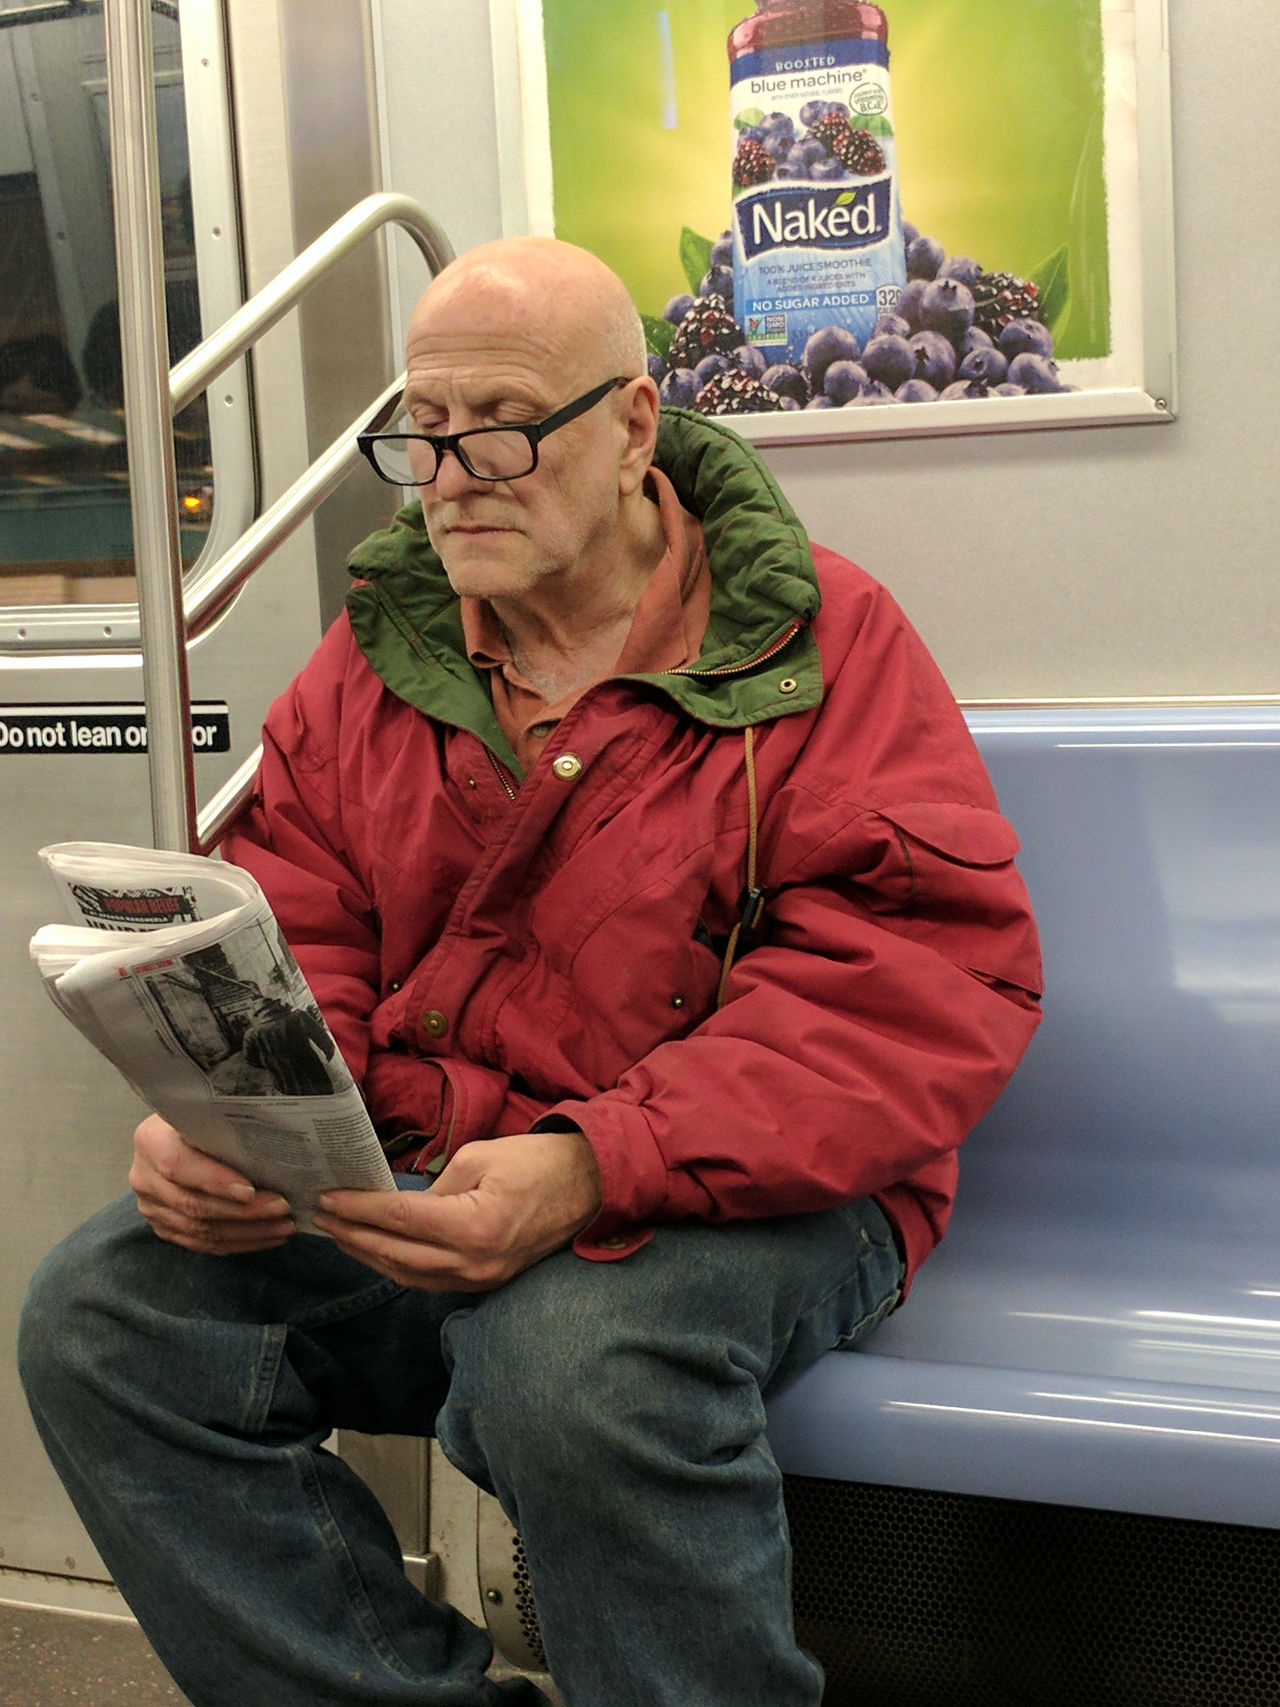 Naked, not naked. Reading on the subway. City Life City Portraits Commuting Eyeglasses  F Train Man New York City Newspaper On The Train One Man Only One Person Portrait Public Transportation Reading Reading The Newspaper Red Jacket Single Person Subway Subway Train Transit